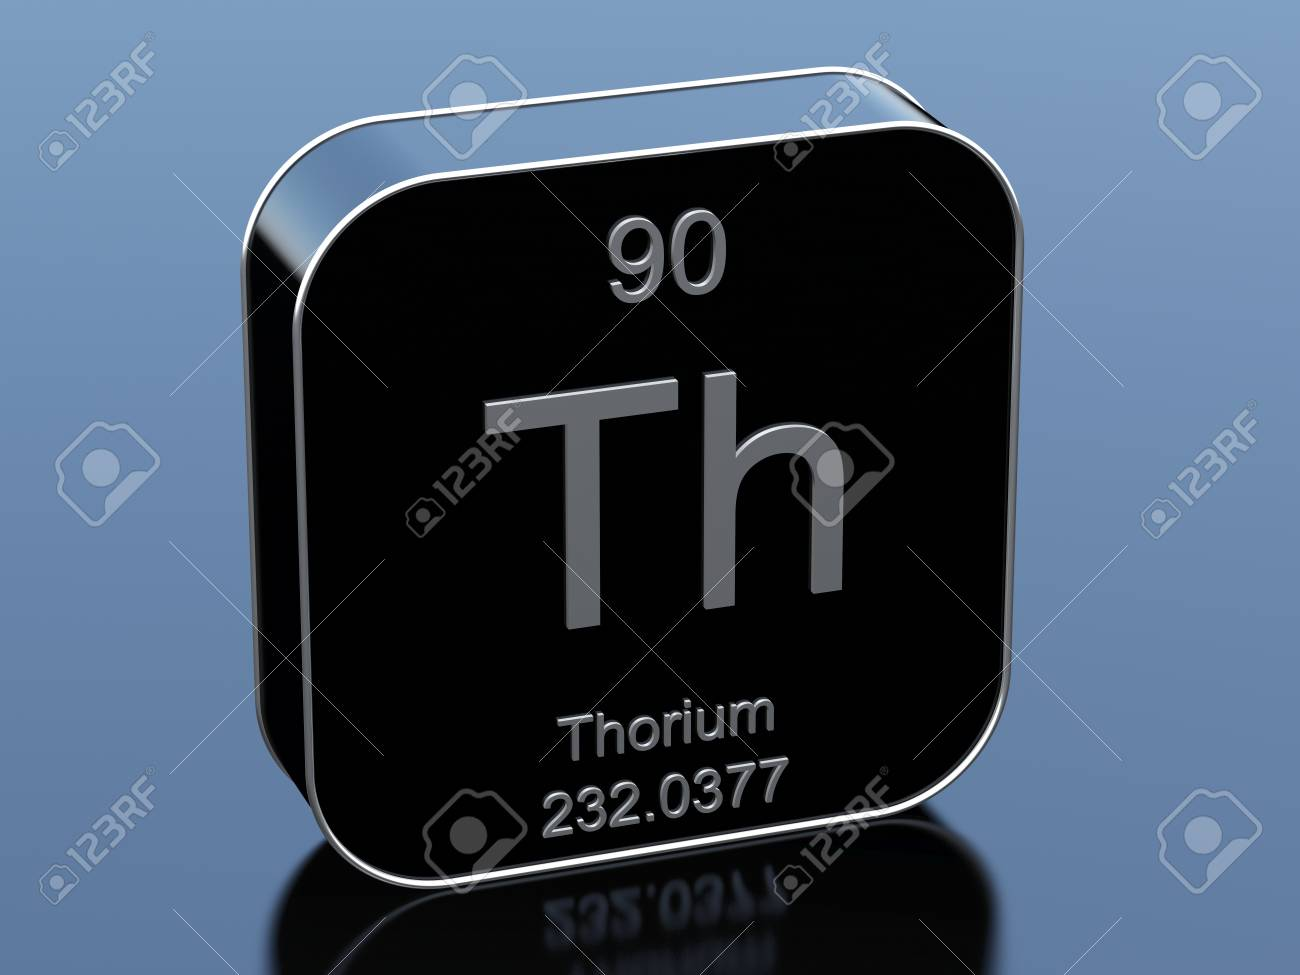 Thorium From Periodic Table Stock Photo Picture And Royalty Free